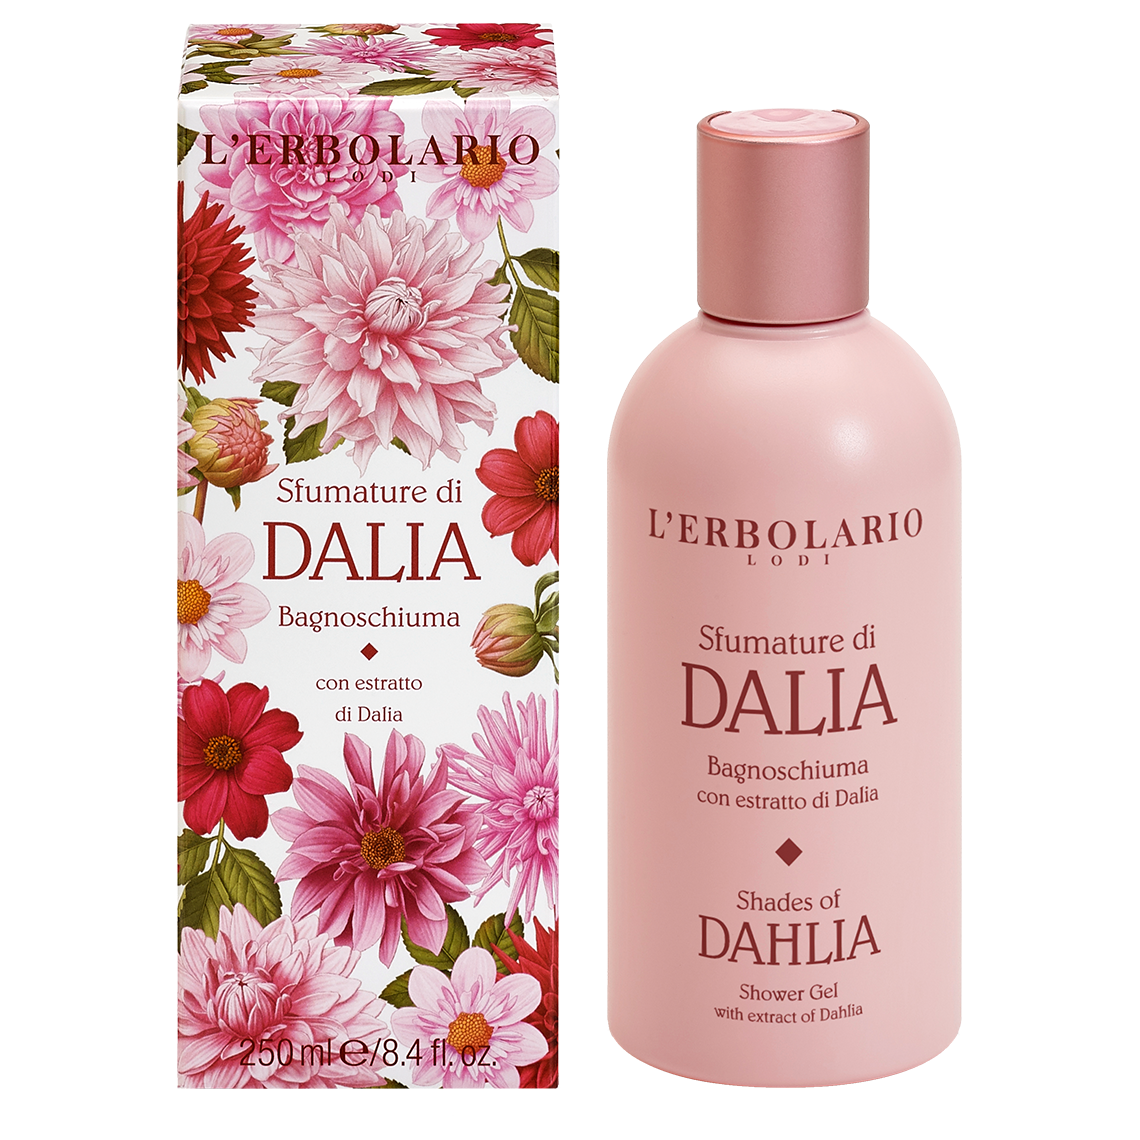 Gel de dus Shades of Dahlia, 250ml, L'Erbolario imagine produs 2021